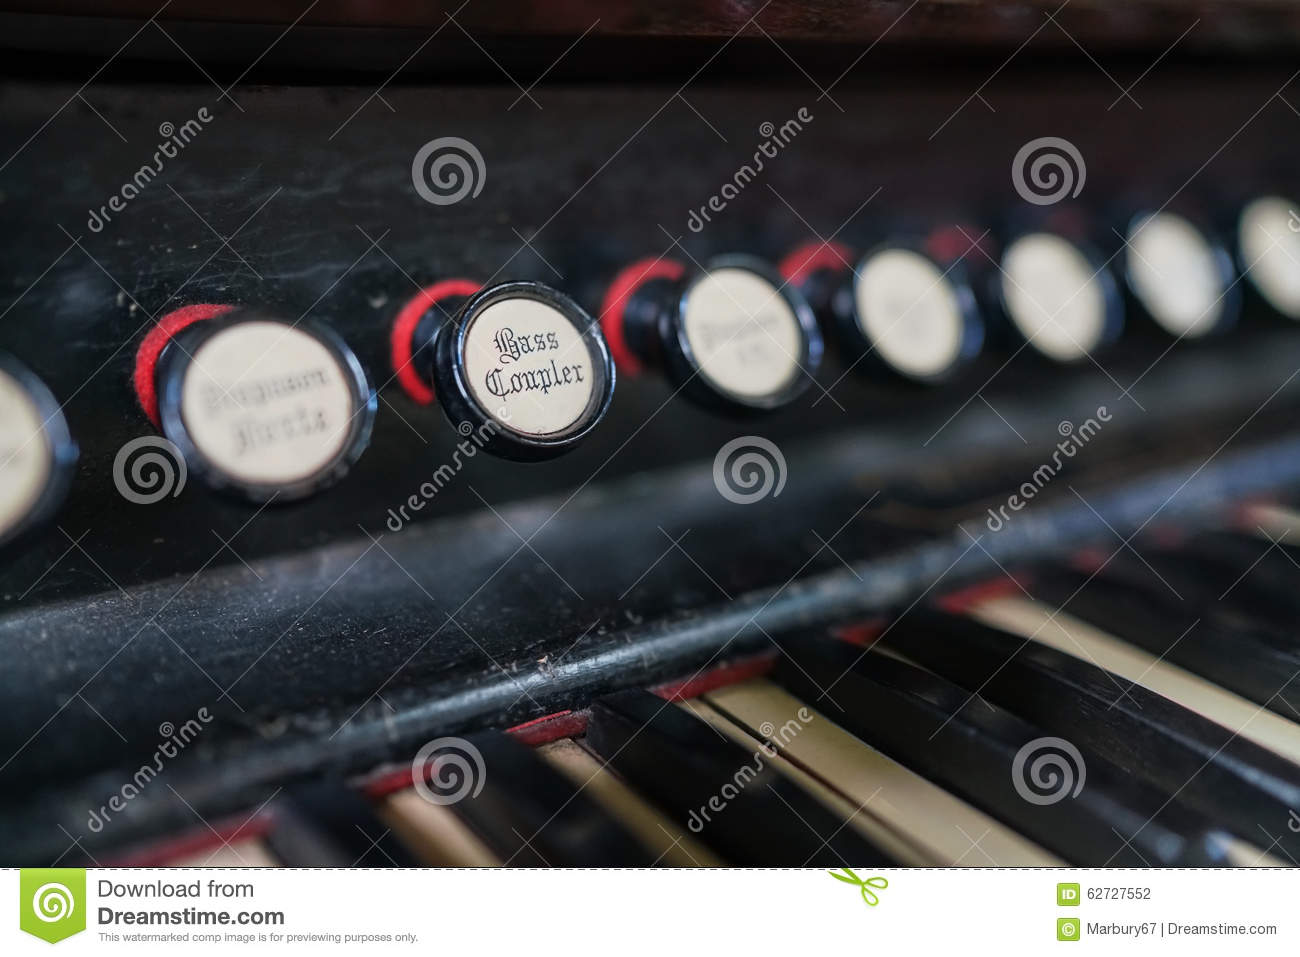 Organ bass coupler stock photo image 62727552 for Classic house organ bass